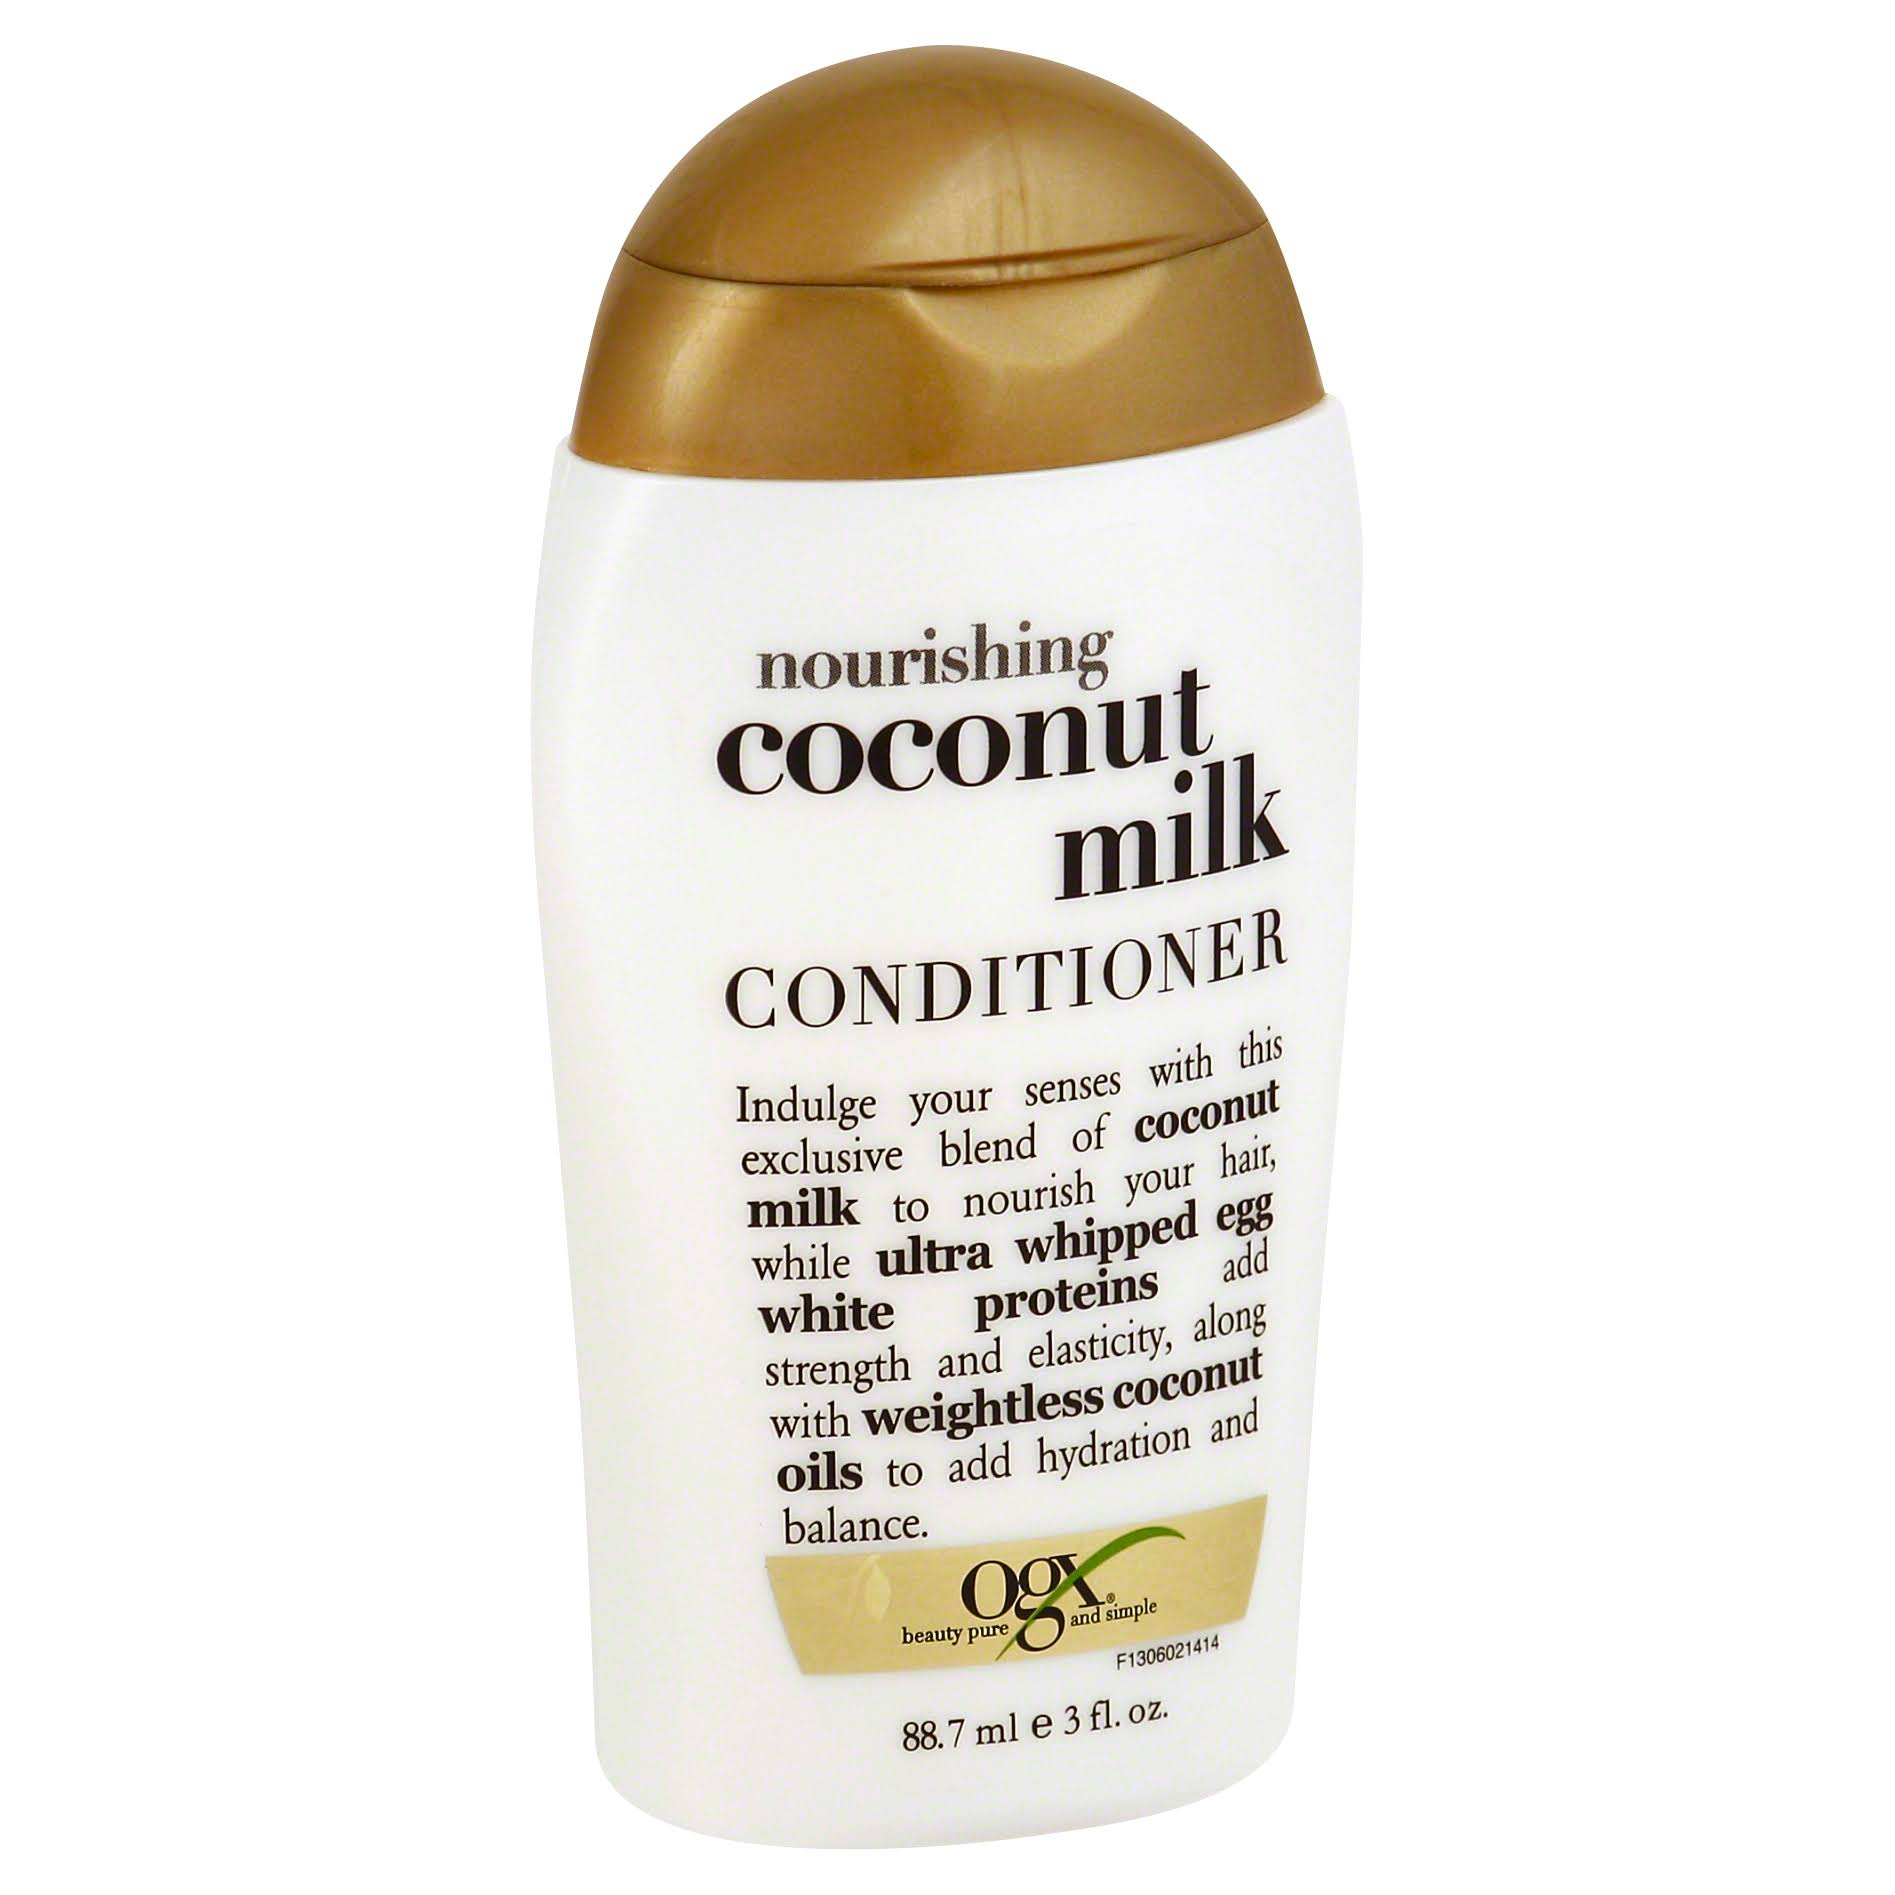 Ogx Conditioner - 88.7ml, Coconut Milk